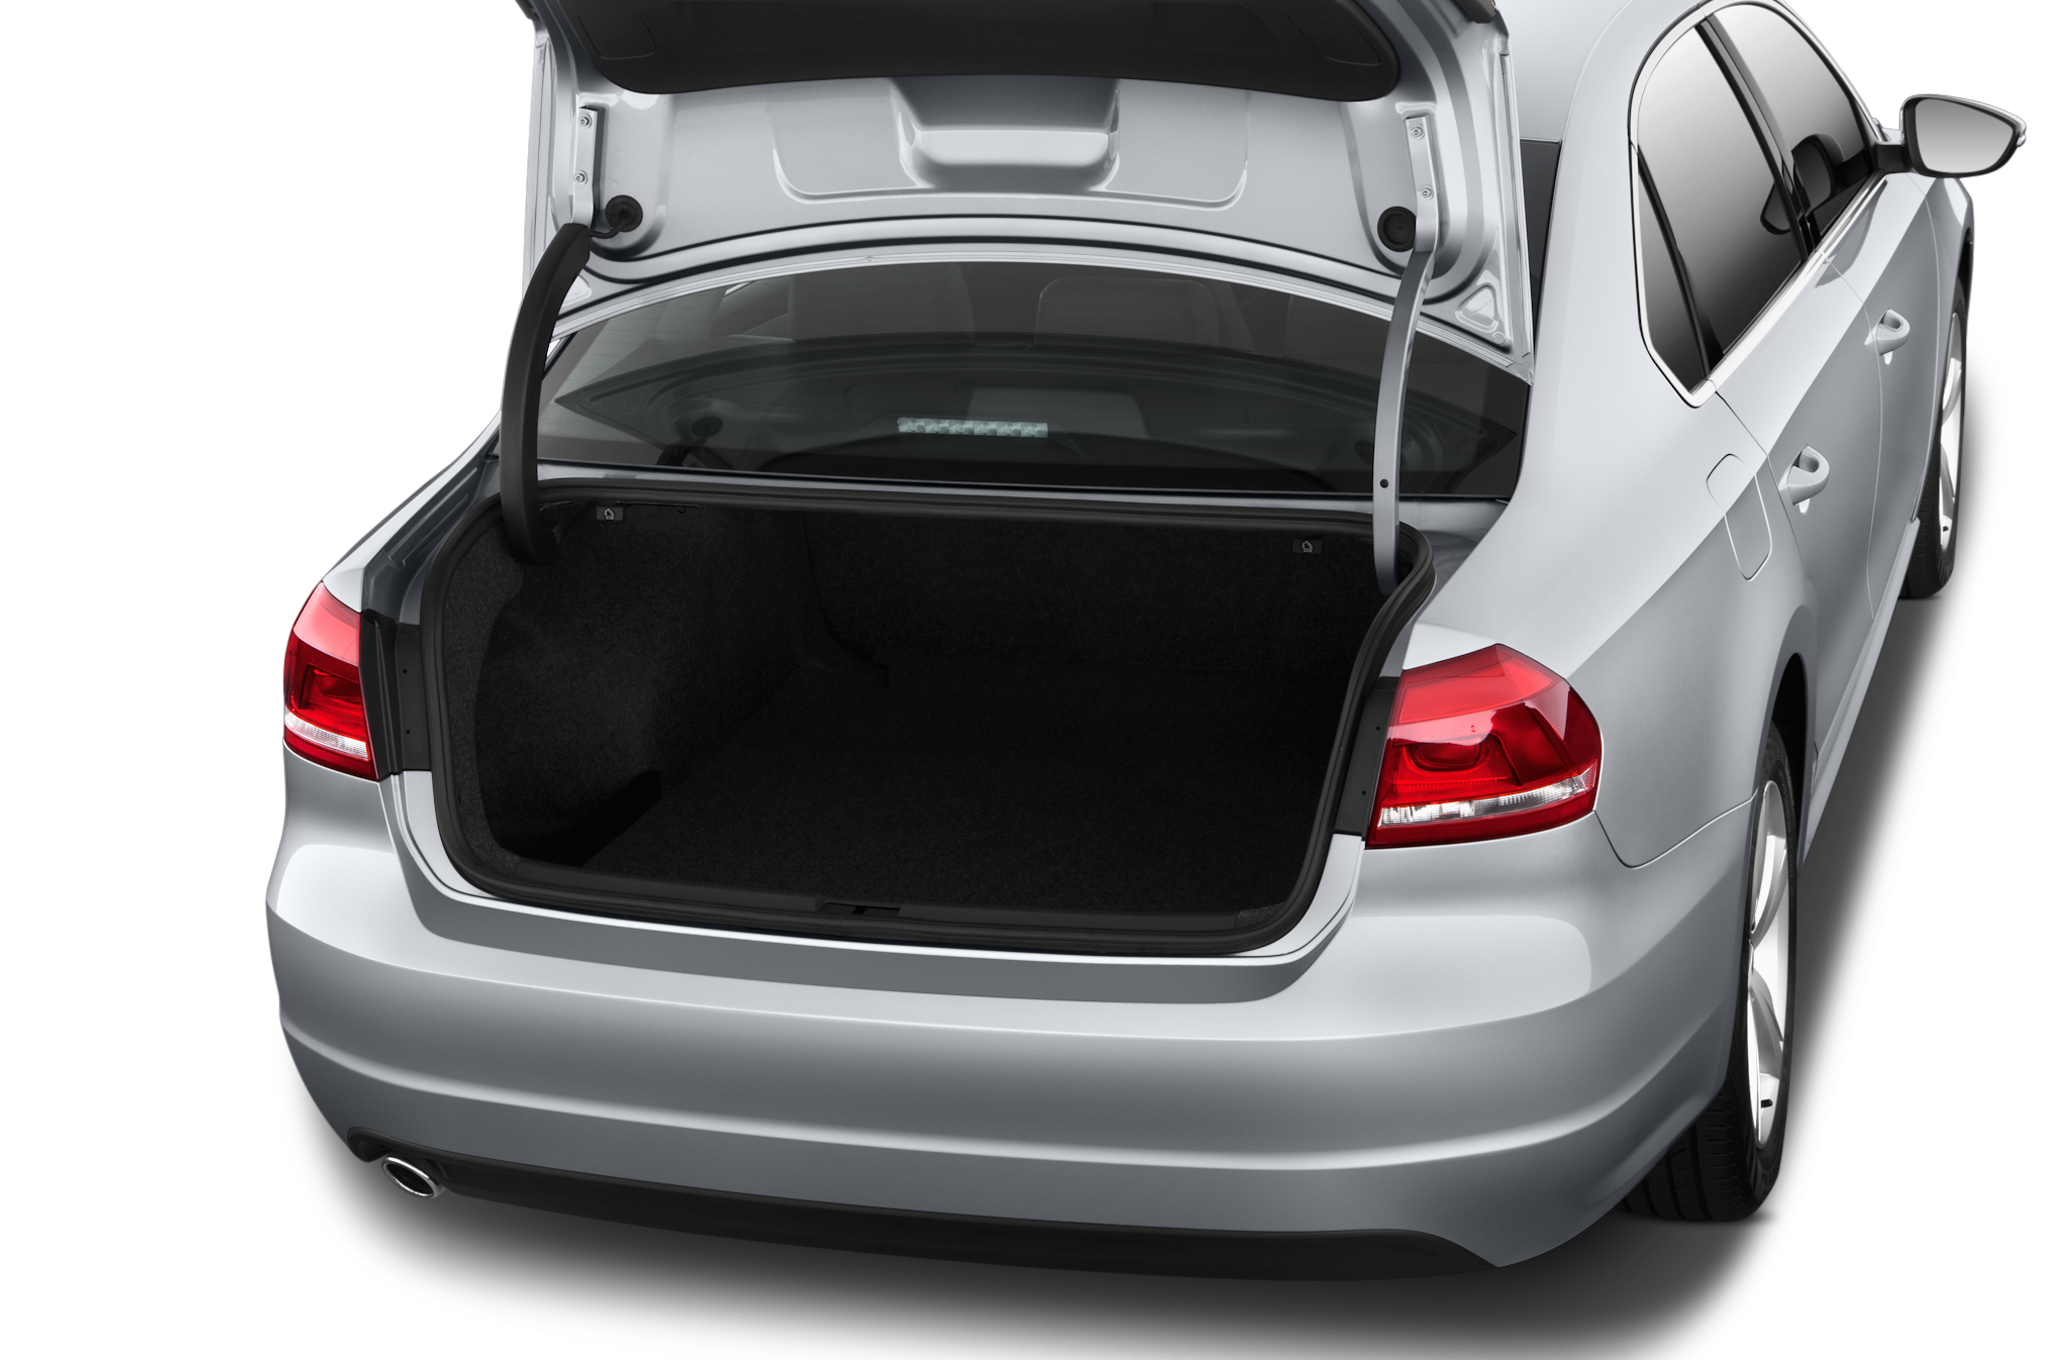 Car Trunk Image PNG Image